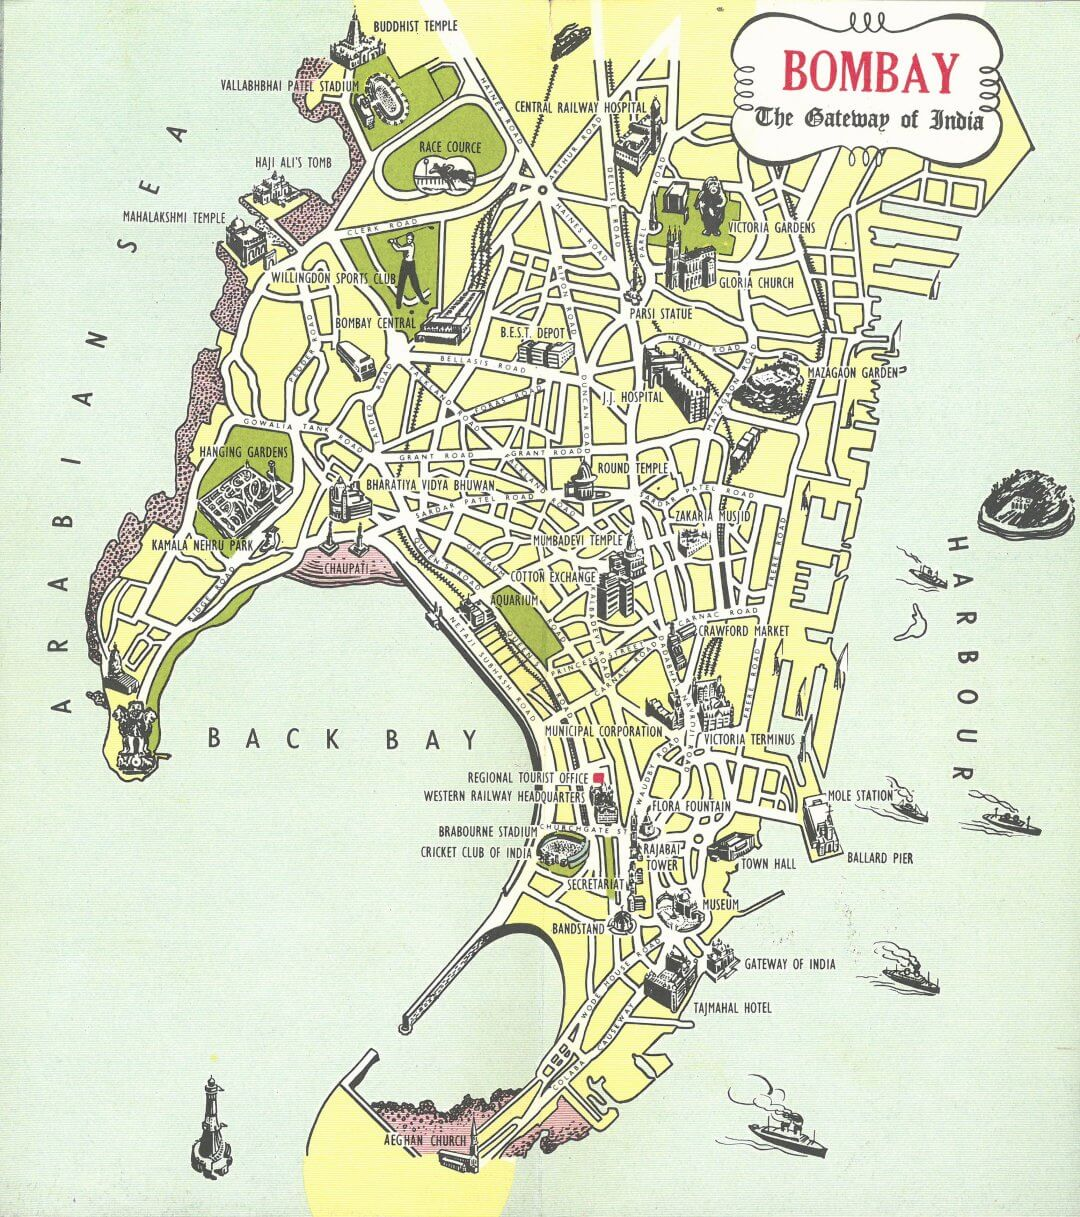 City Map of Bombay (Mumbai)